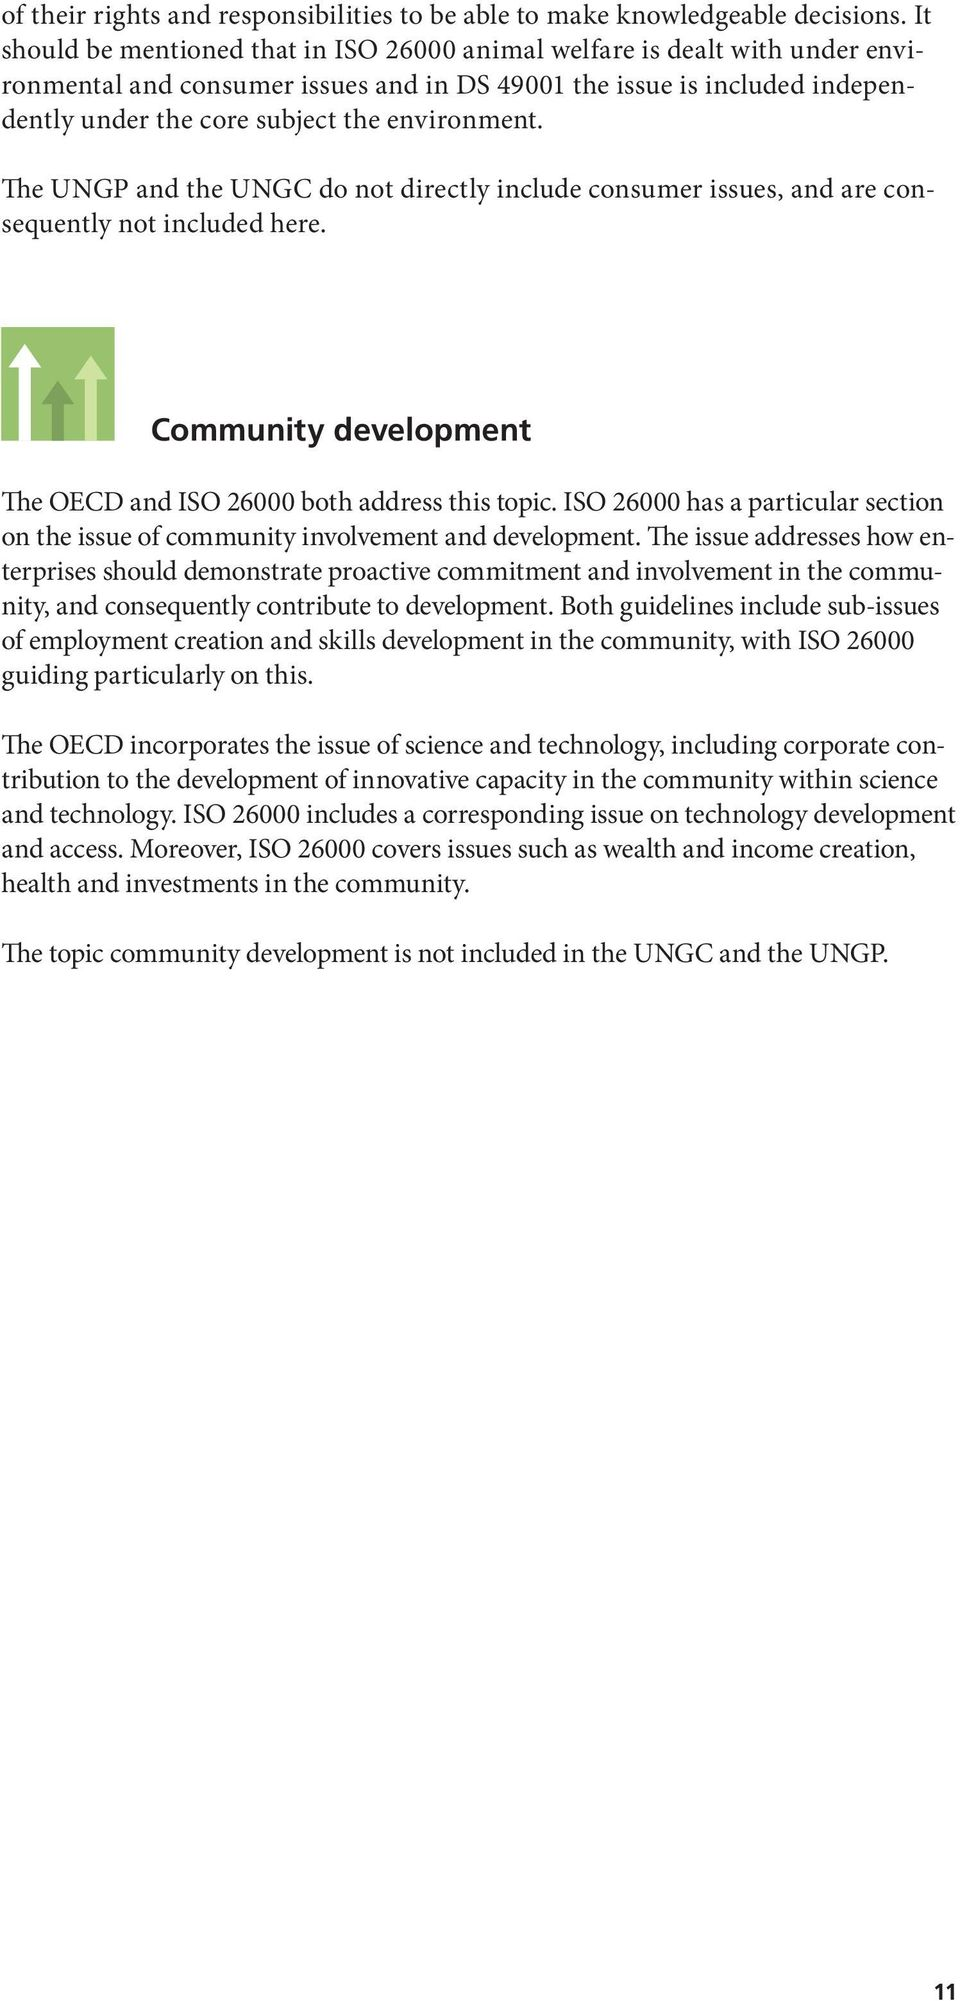 environment. The UNGP and the UNGC do not directly include consumer issues, and are consequently not included here. Community development The OECD and ISO 26000 both address this topic.